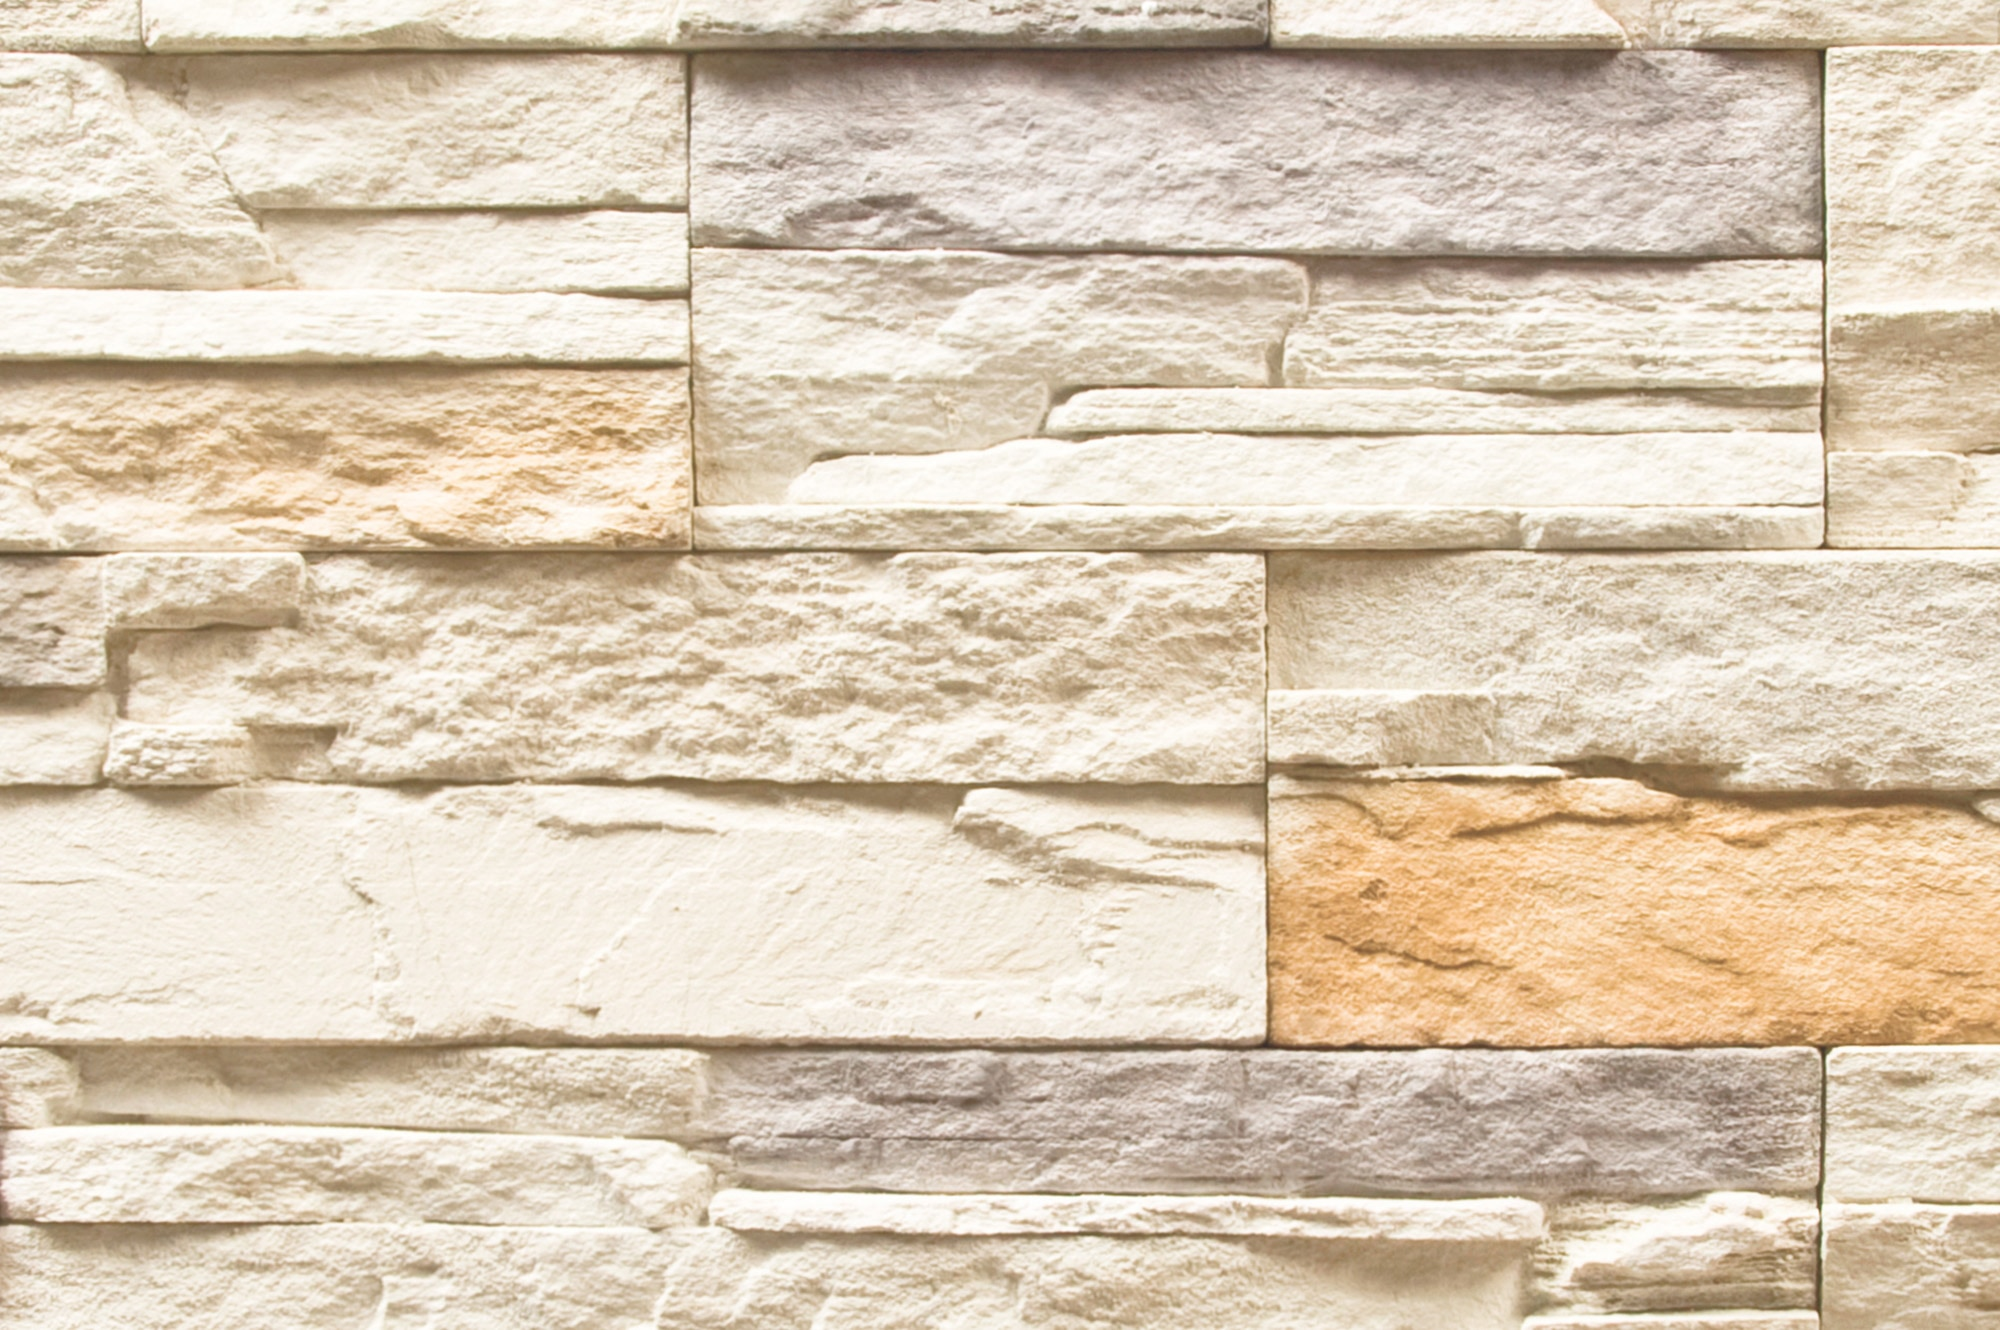 Ailesbury Manufactured Stone European Manufactured Ledge